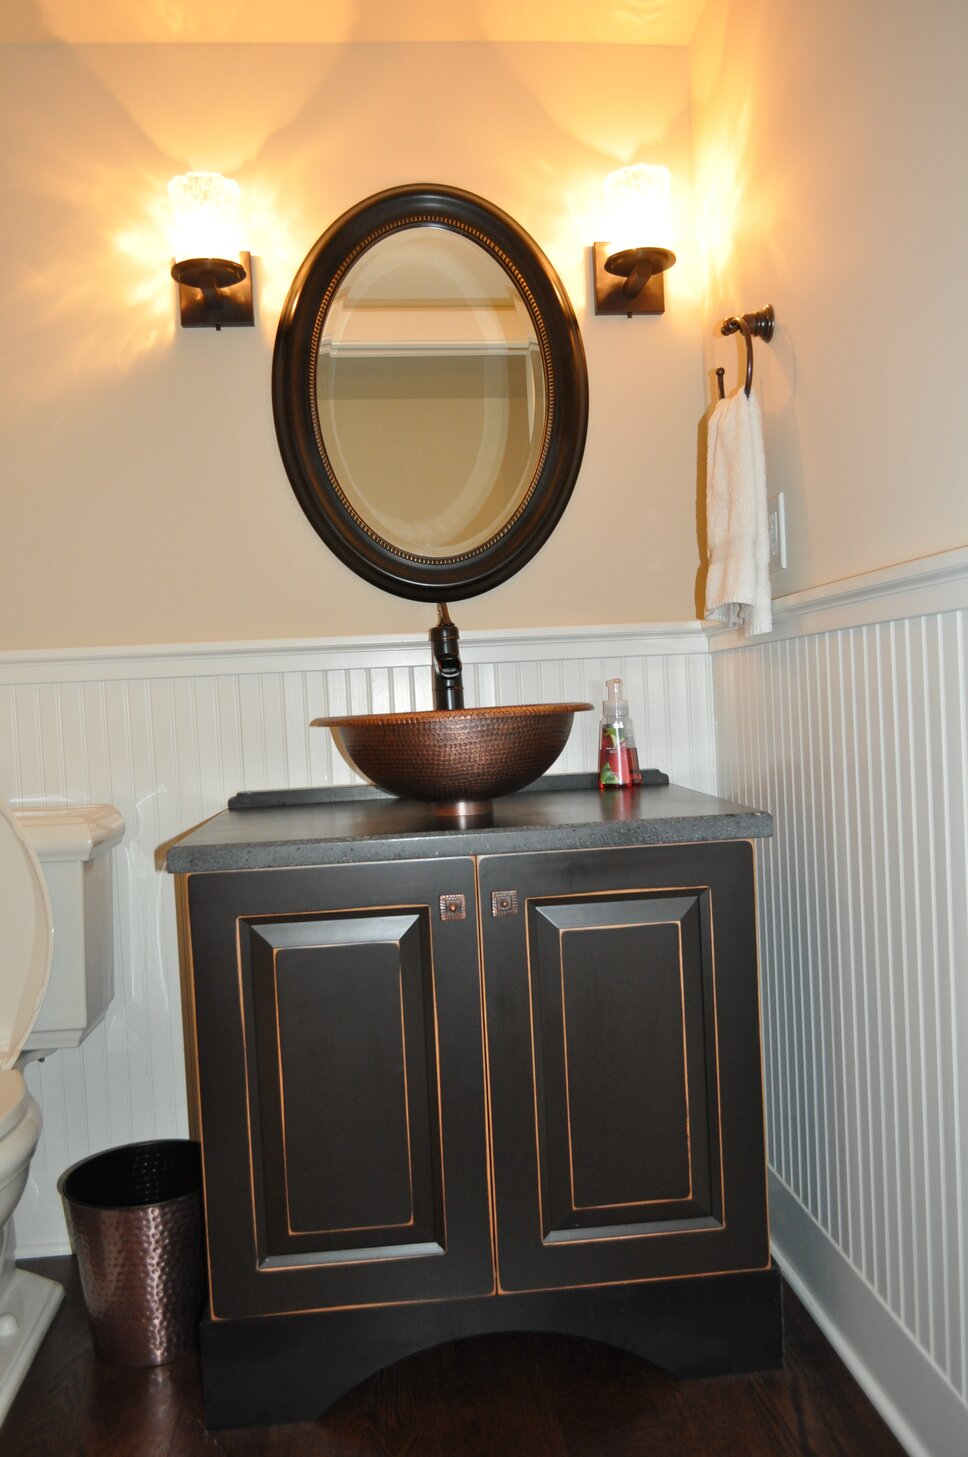 The hammered copper sink is elegant with the custom rubbed black cabinet. Contemporary Bathroom design